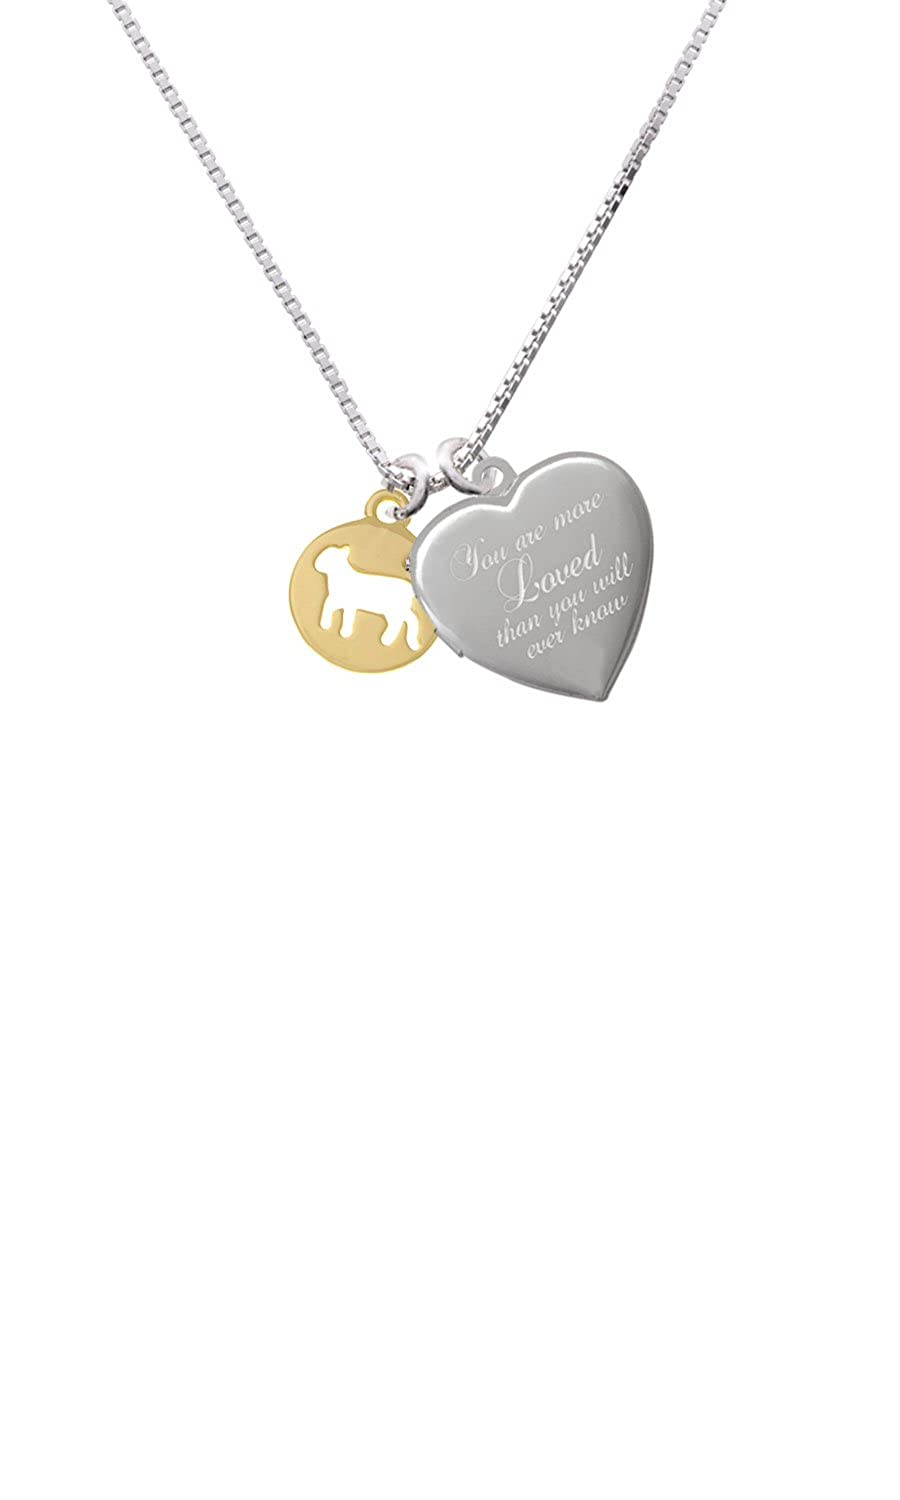 Gold Tone Lamb Silhouette Custom Engraved You are more Loved Heart Locket Necklace